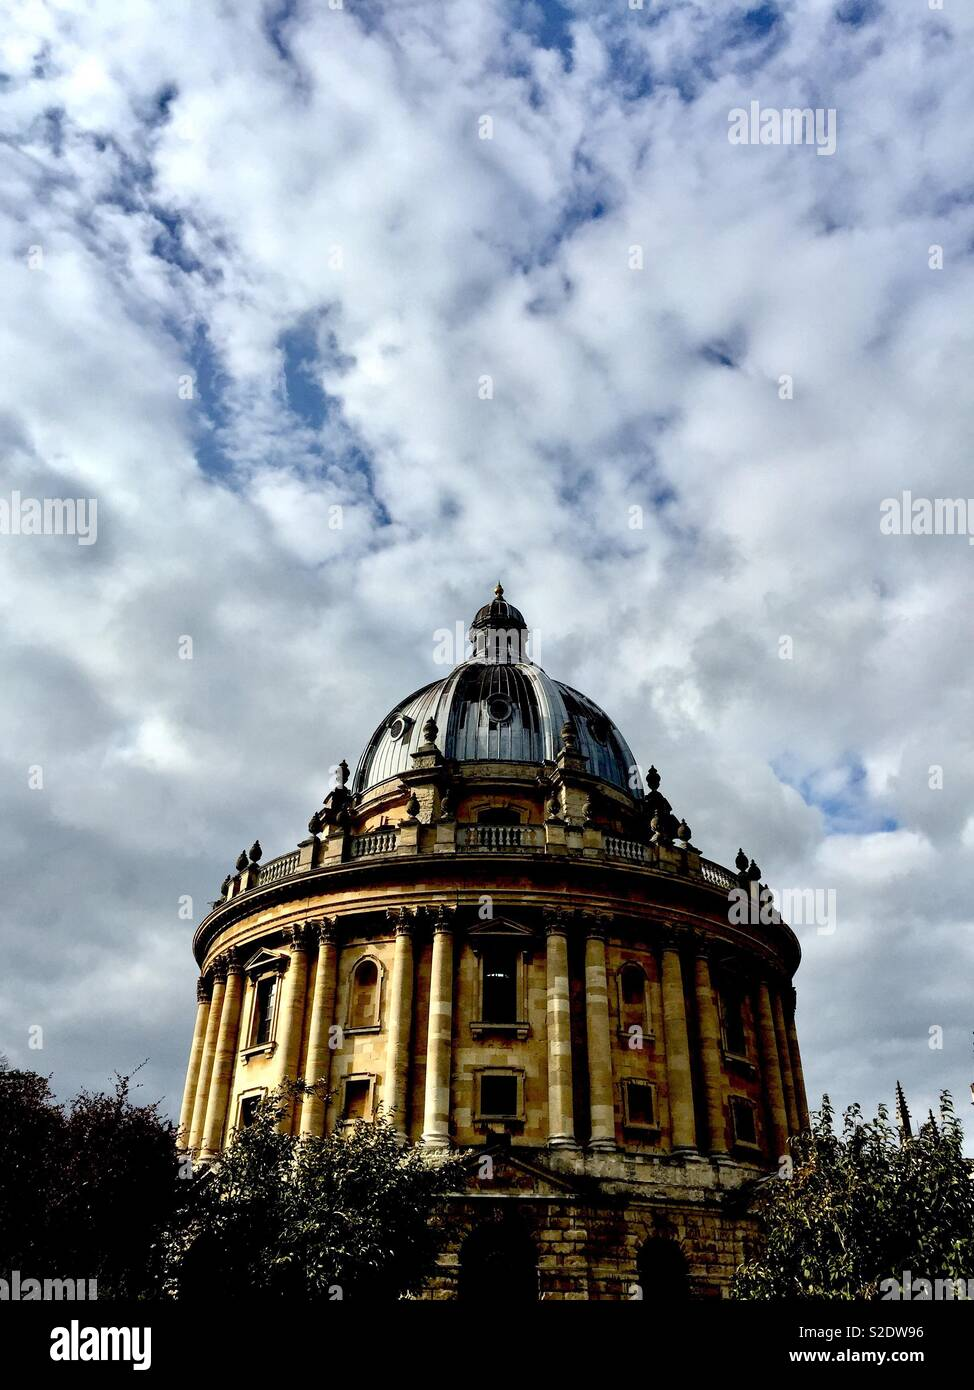 Bath, UK and clouds - Stock Image